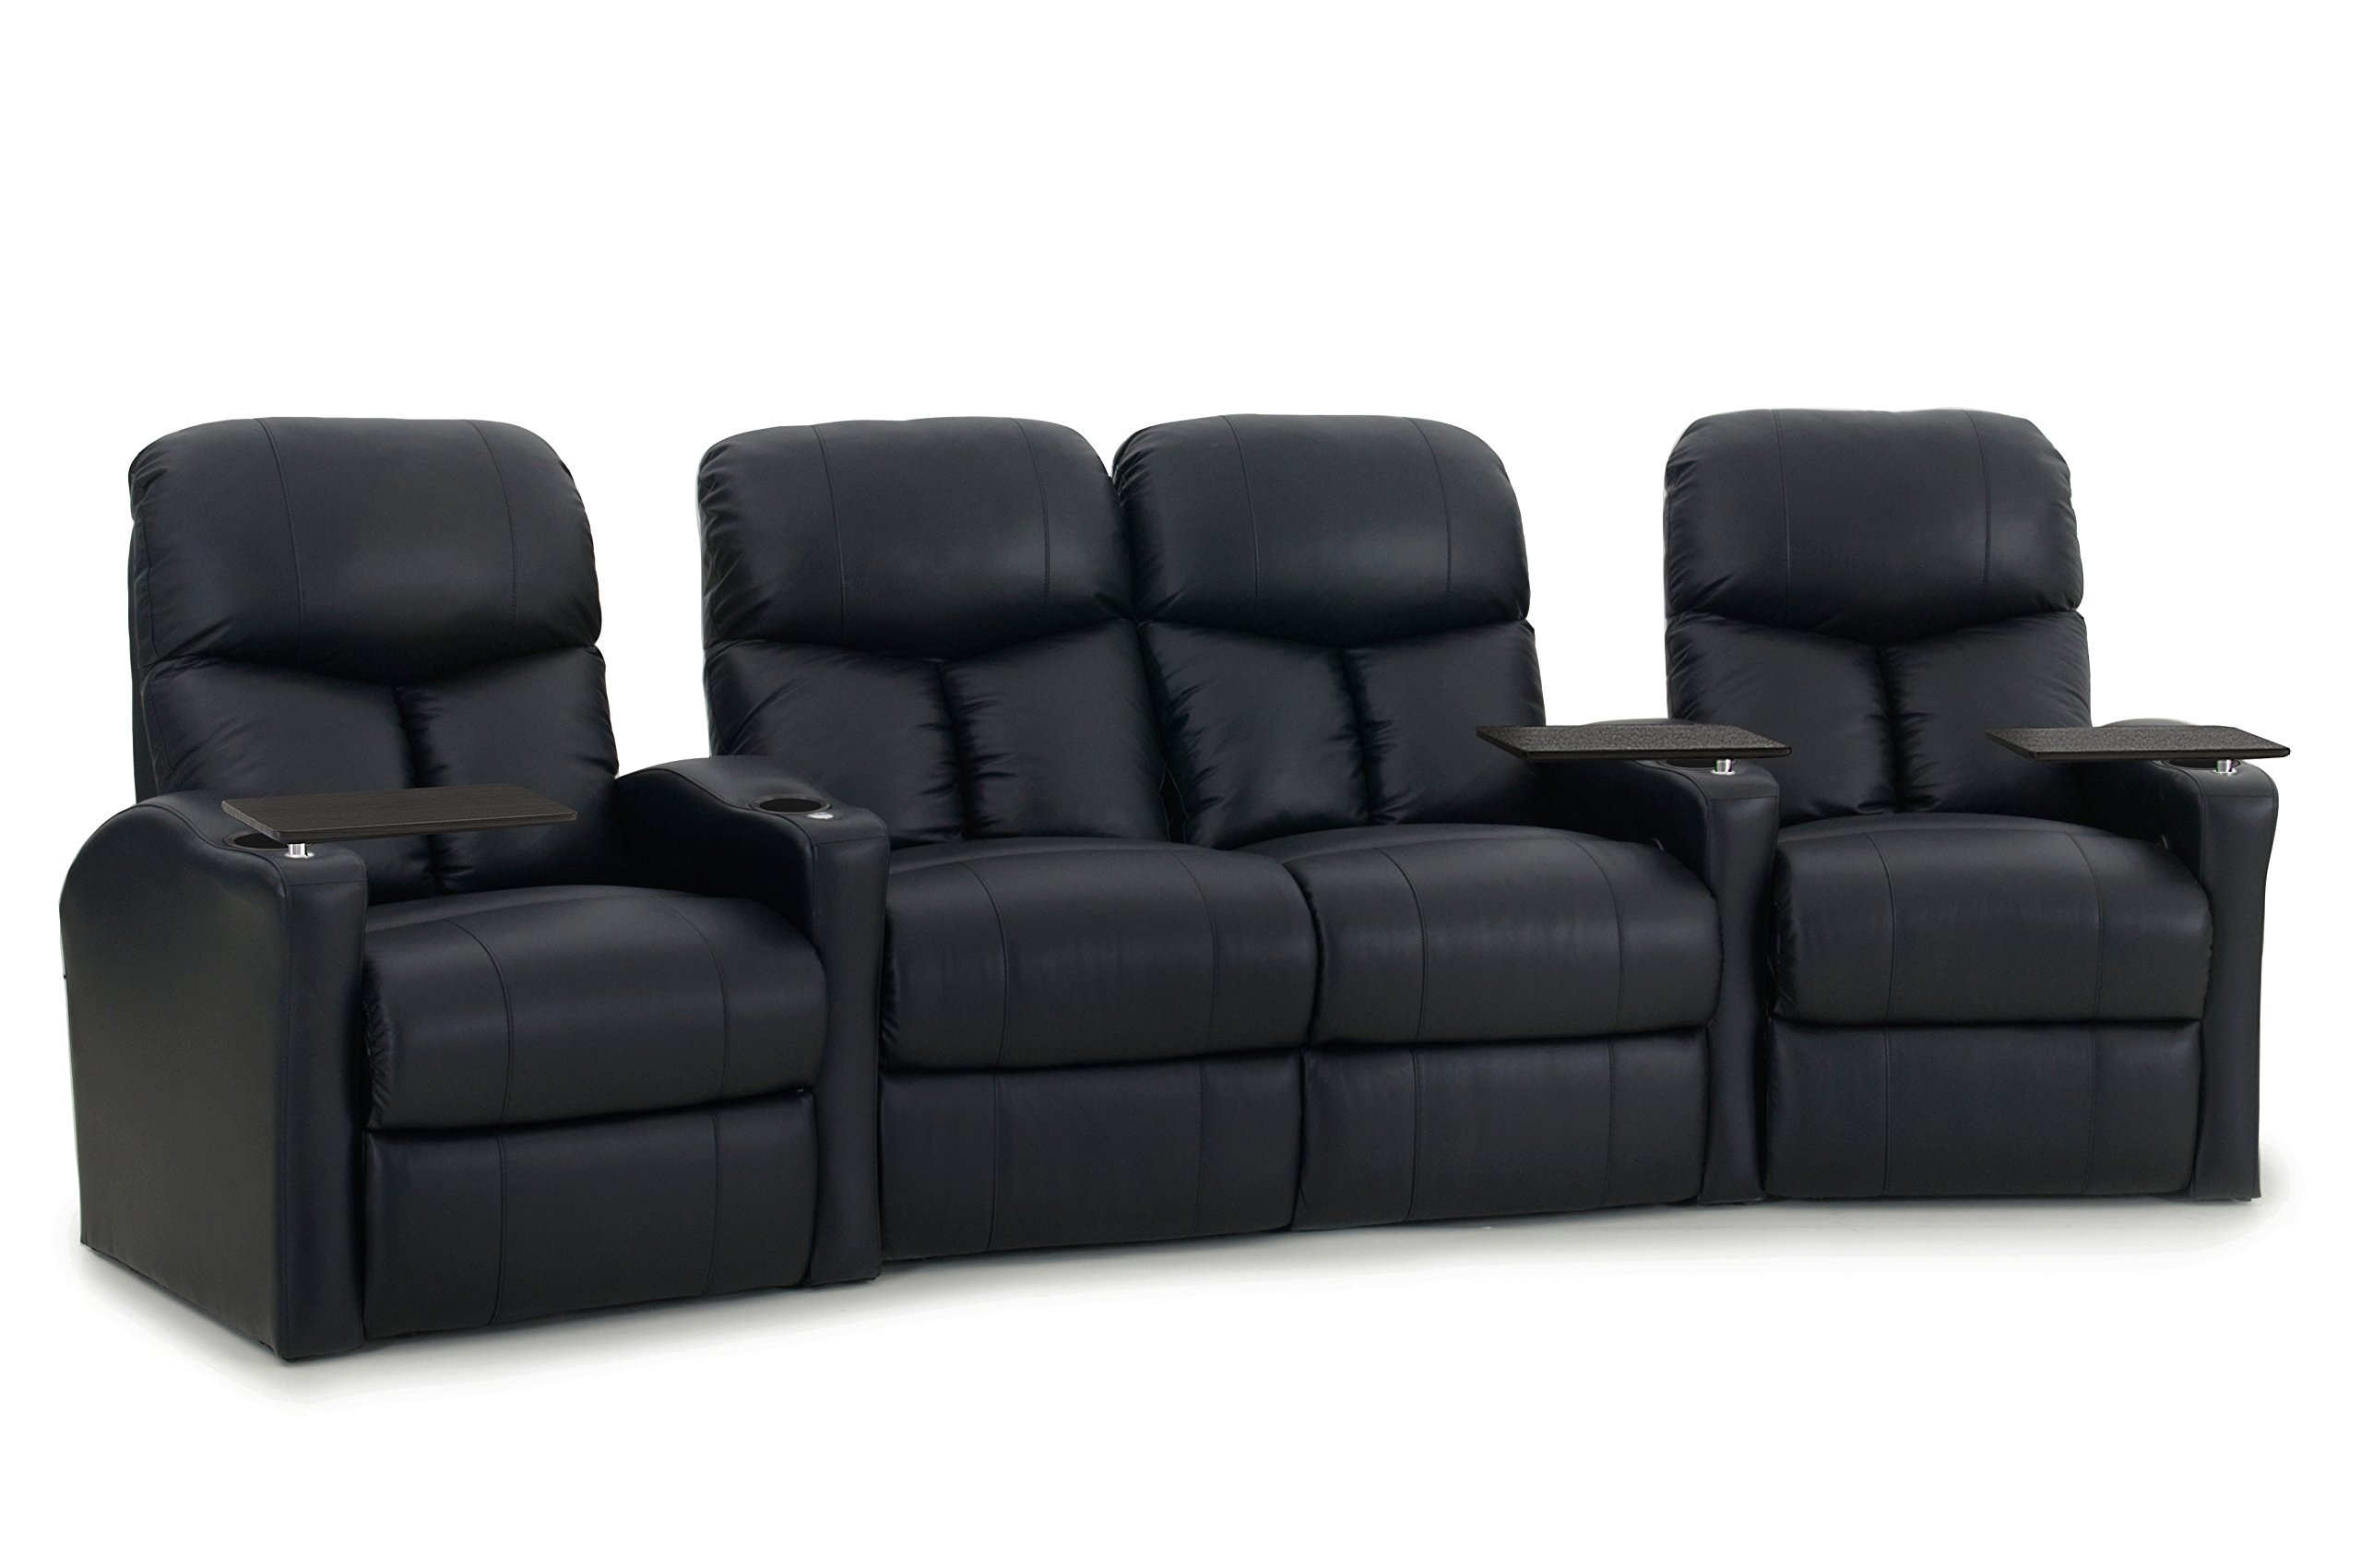 Octane Seating Octane Bolt XS400 Leather Home